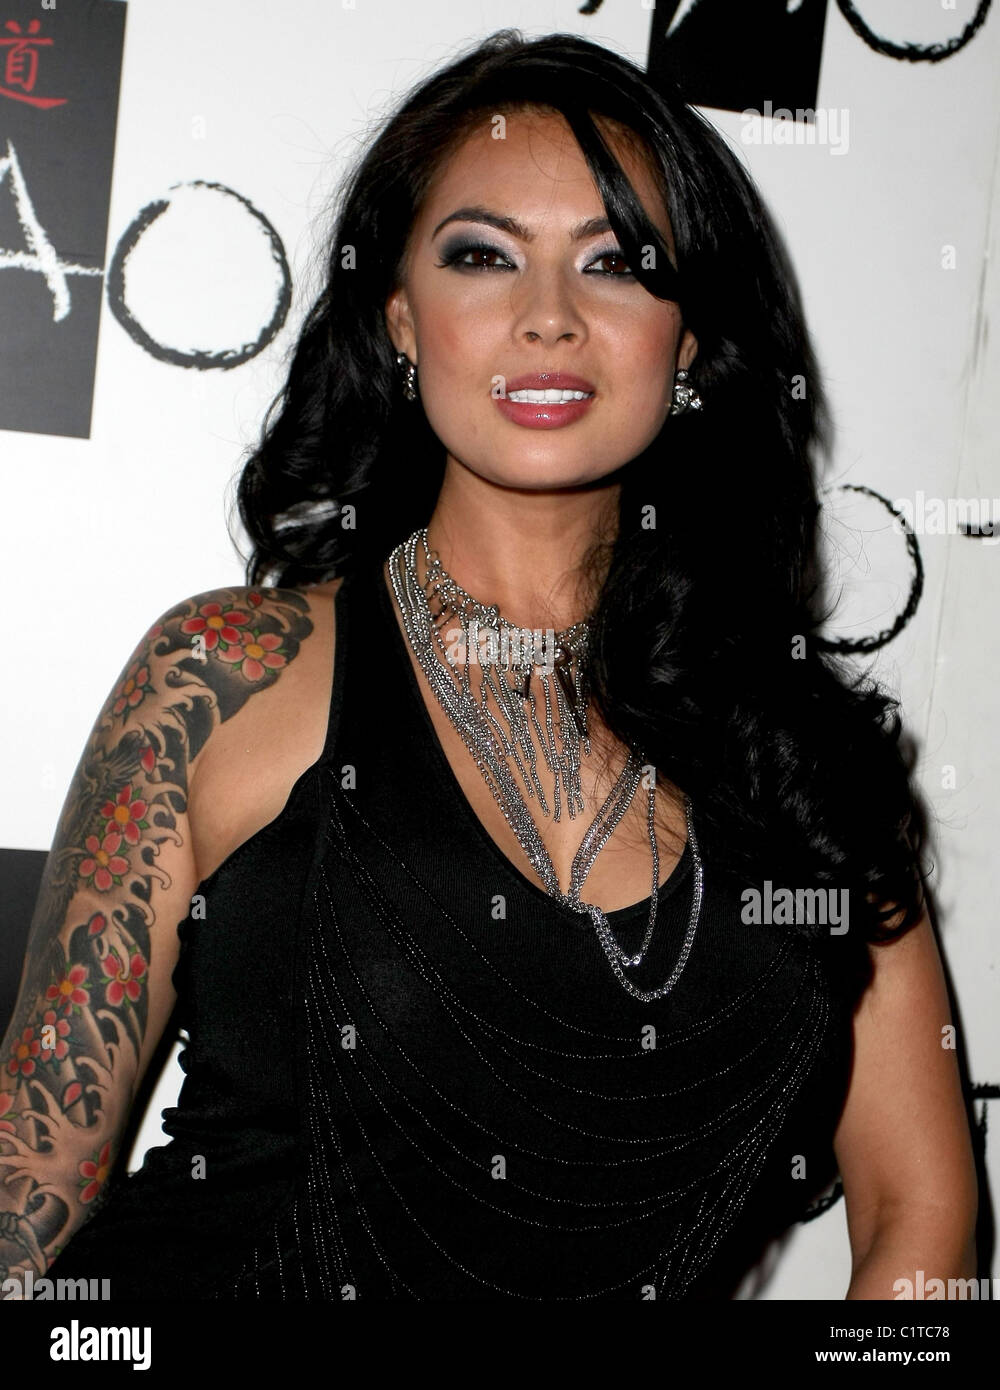 Tera Patrick Celebrates Her Birthday At TAO Nightclub